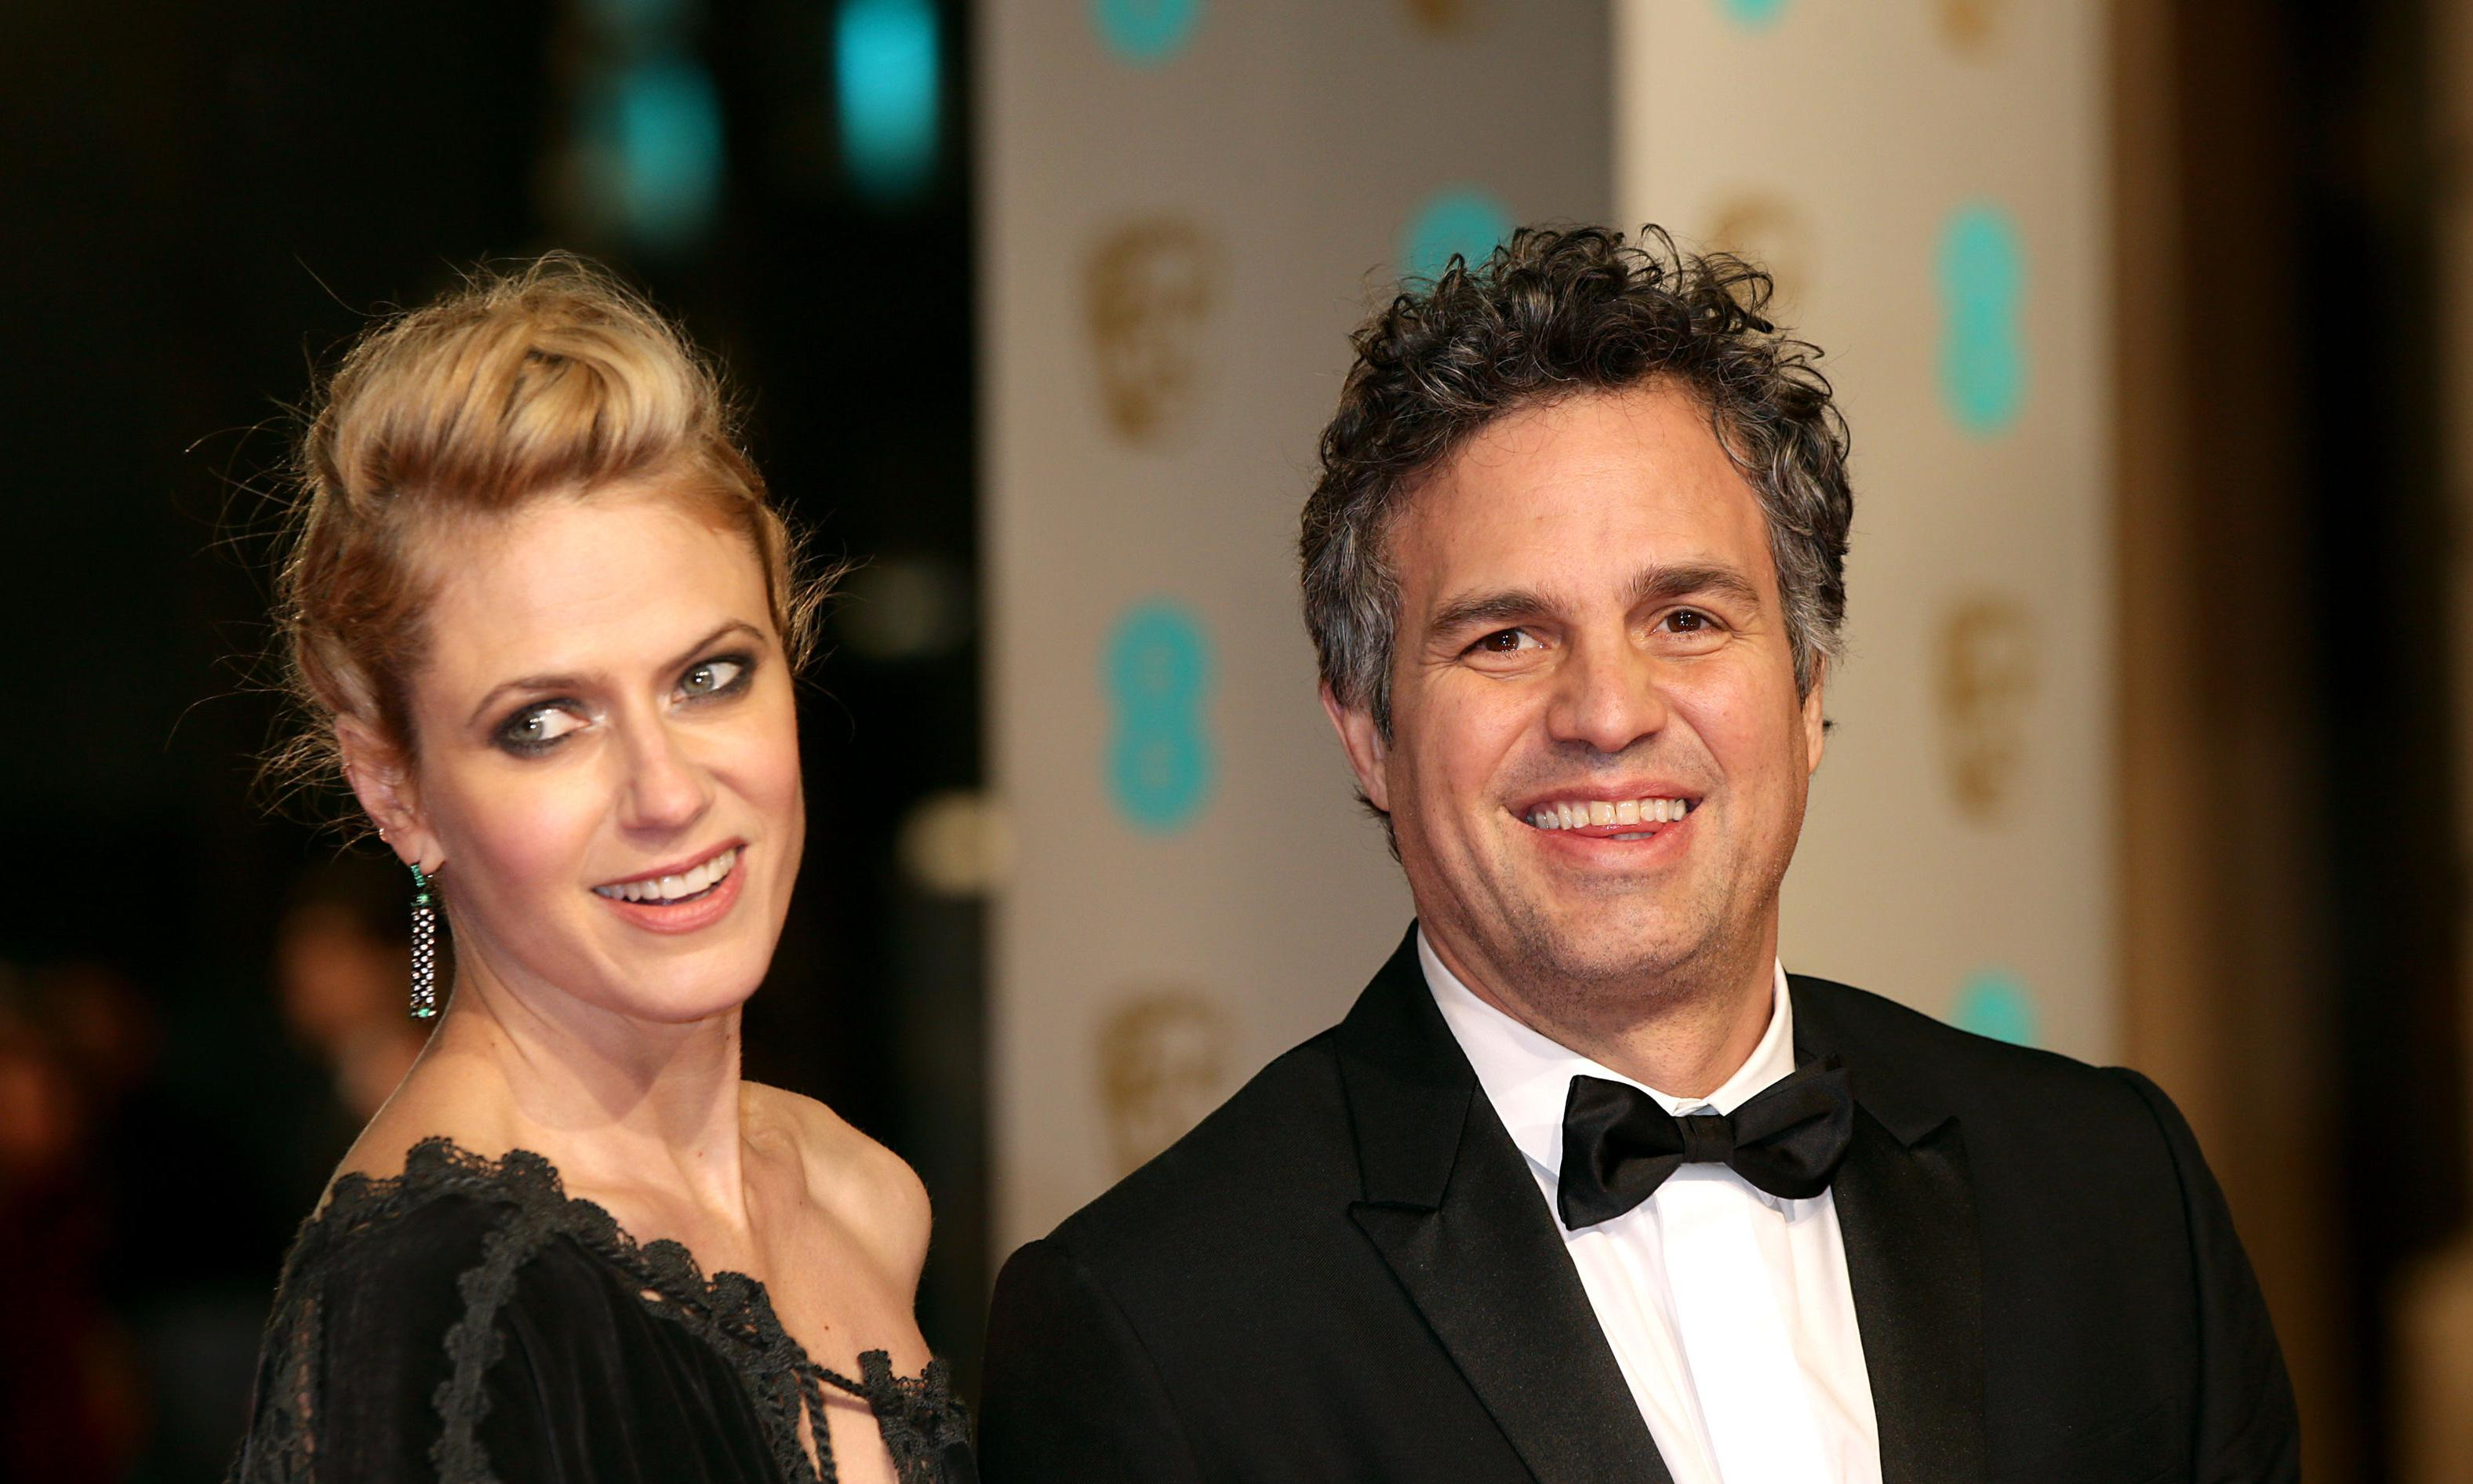 Mark Ruffalo says he helped make activism sexy as he takes lawyer role